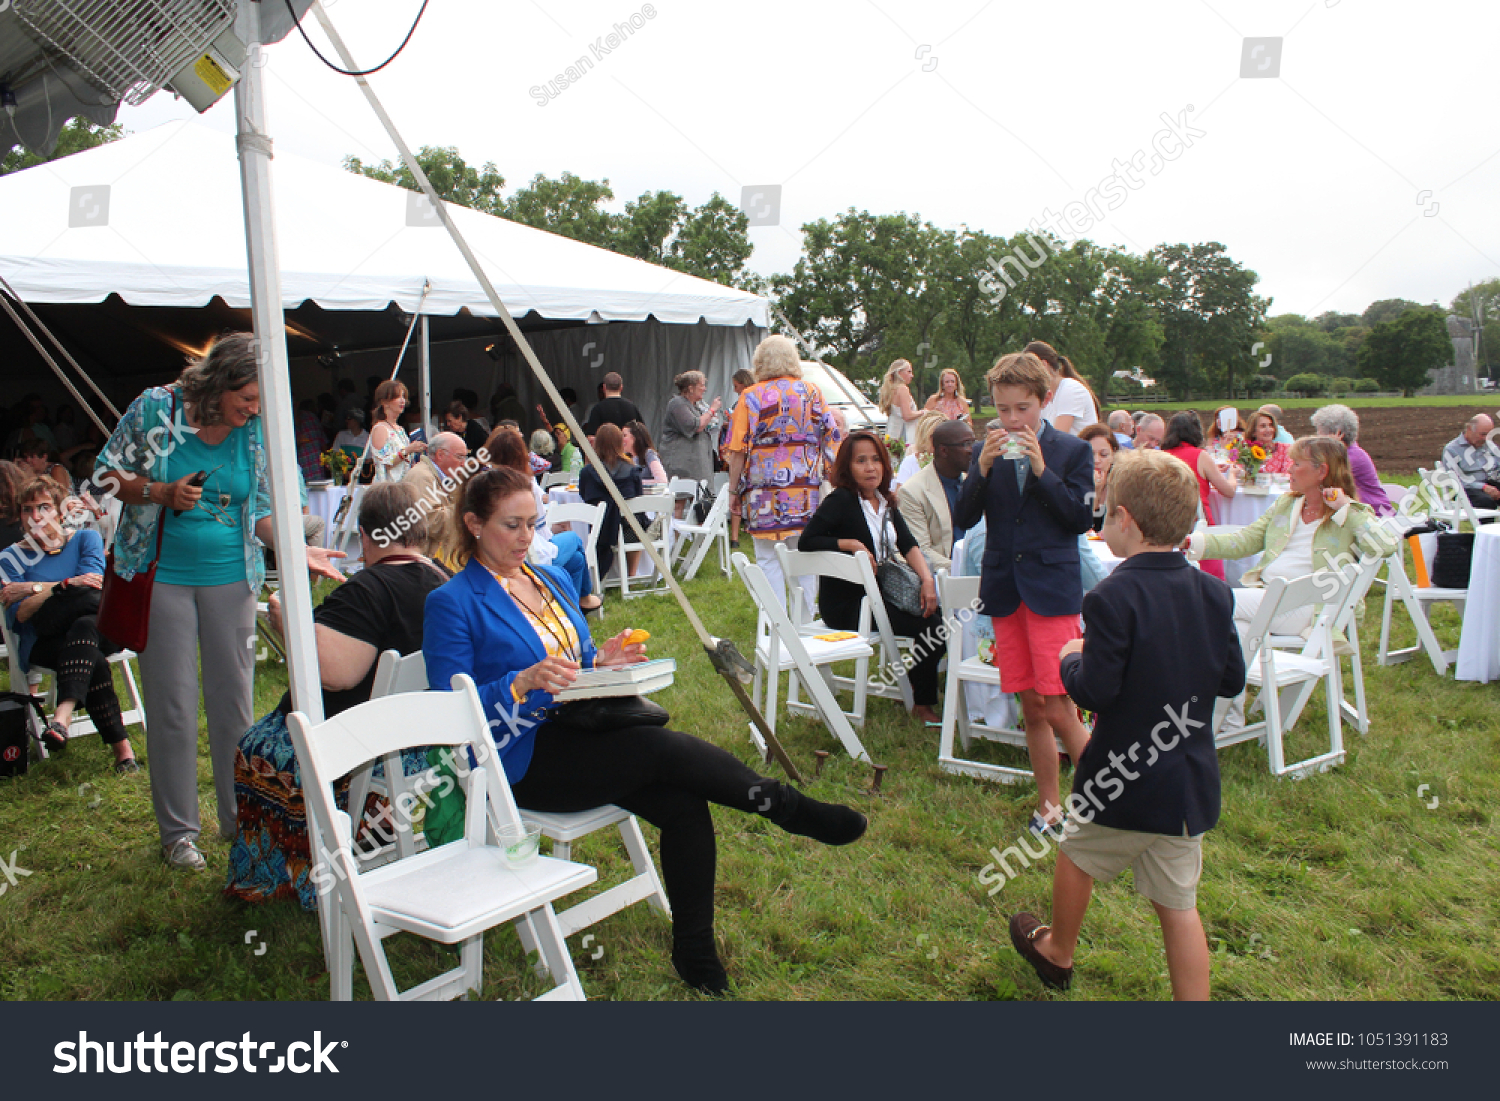 Book Fair Reception East Hampton, NY USA August 12 2017 People sitting at tables and underneath tents eating and drinking and walking in the field